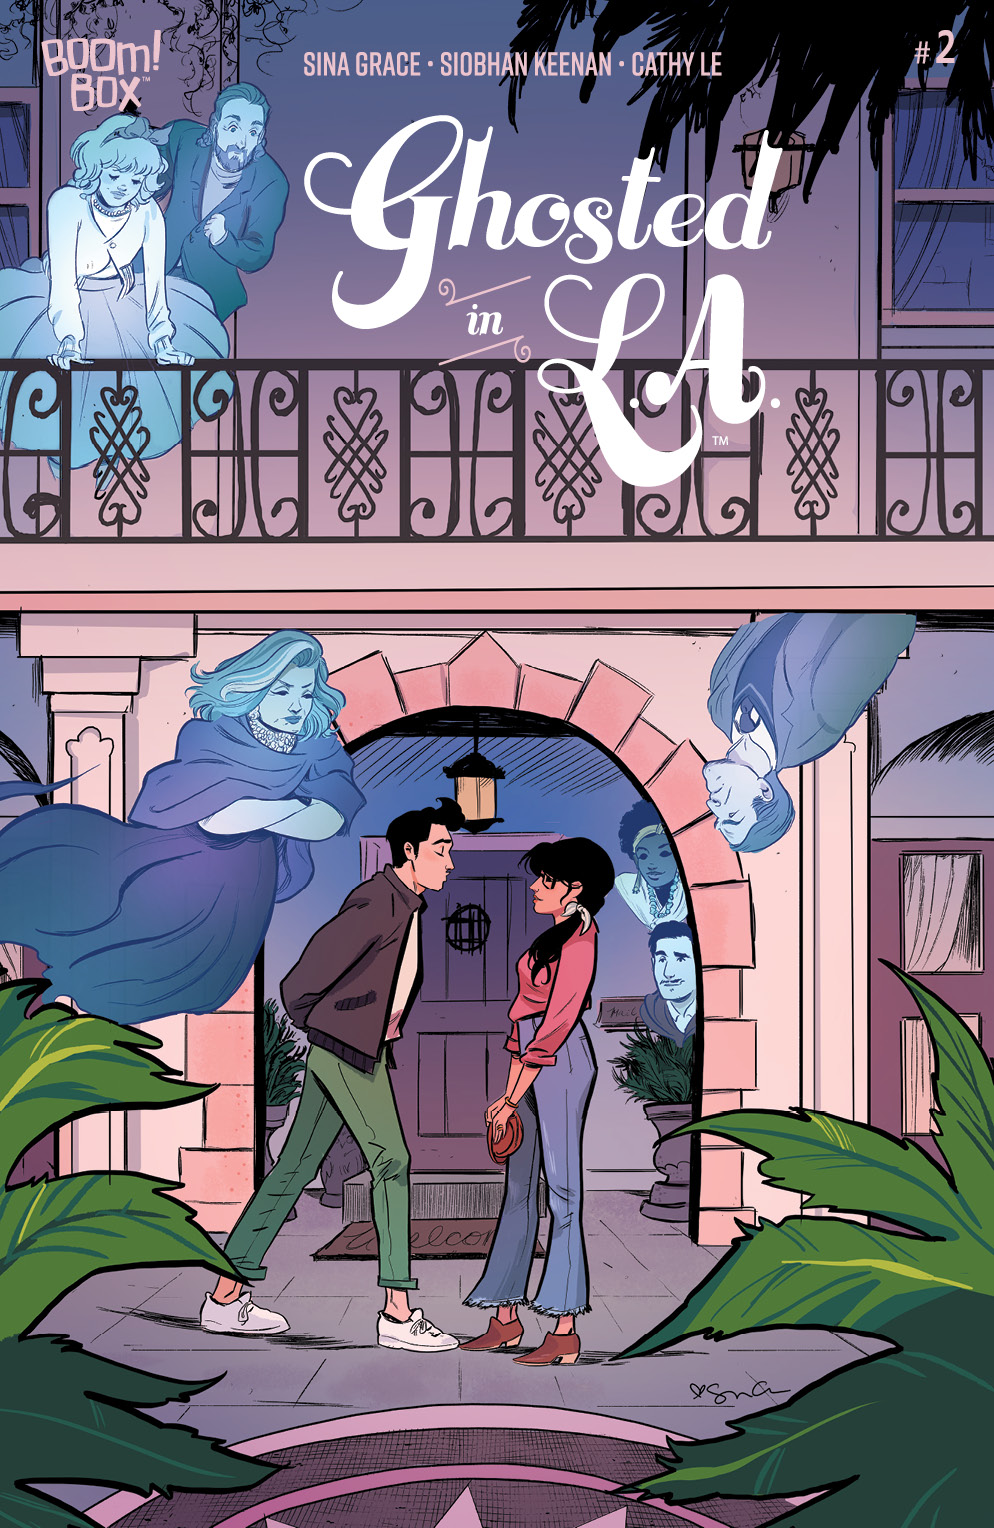 Ghosted in L.A. #2 (Keenan Cover) | Fresh Comics